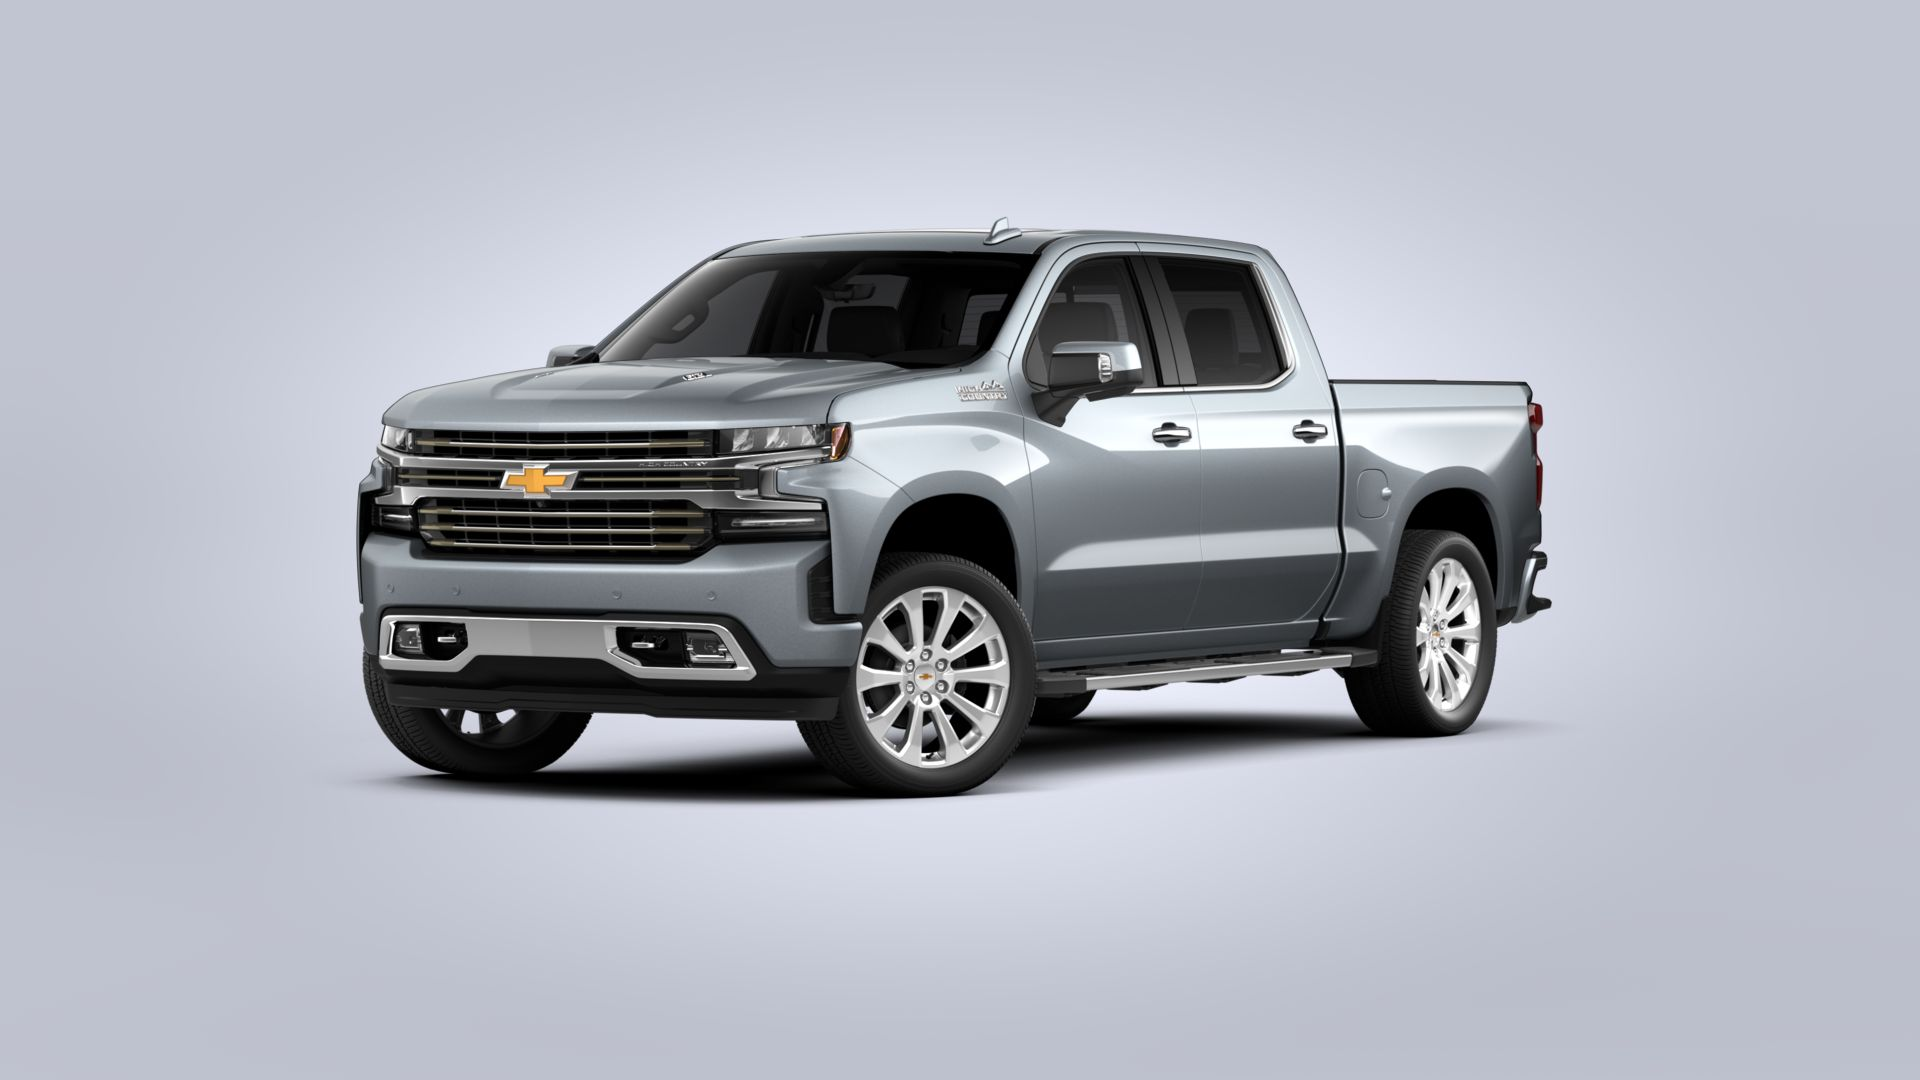 New 2020 Chevrolet Silverado 1500 High Country FOUR WHEEL DRIVE Crew Cab